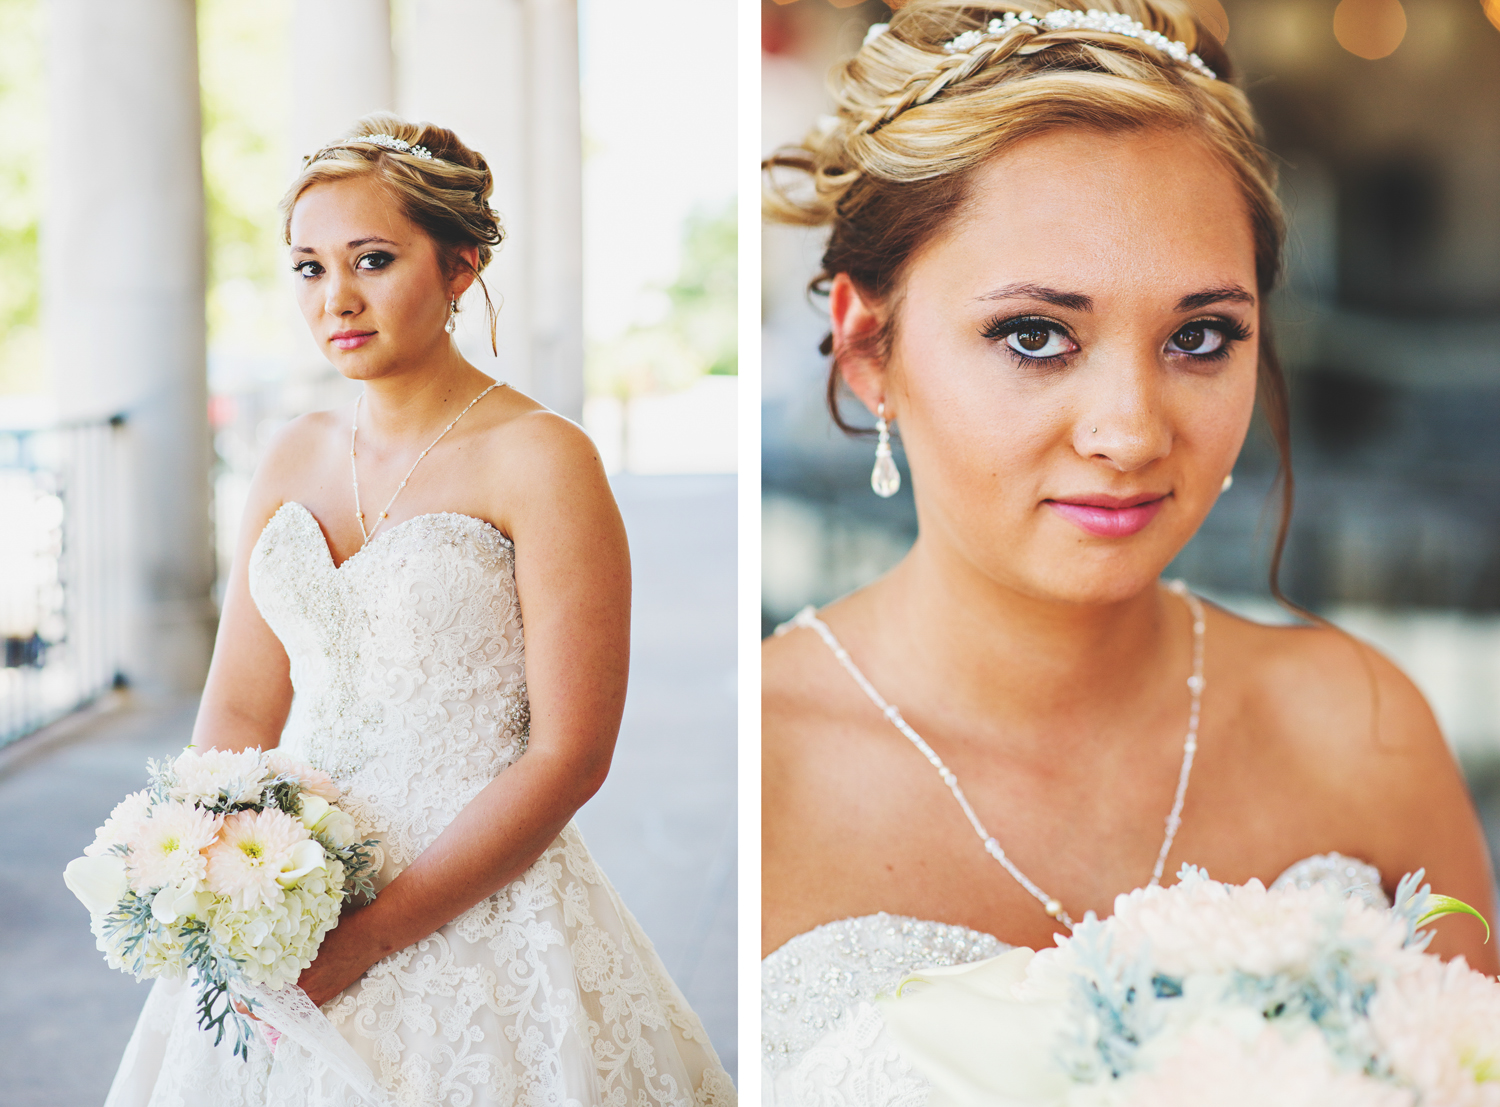 veranda_wedding_photographer_st_joseph_wedding_02.jpg